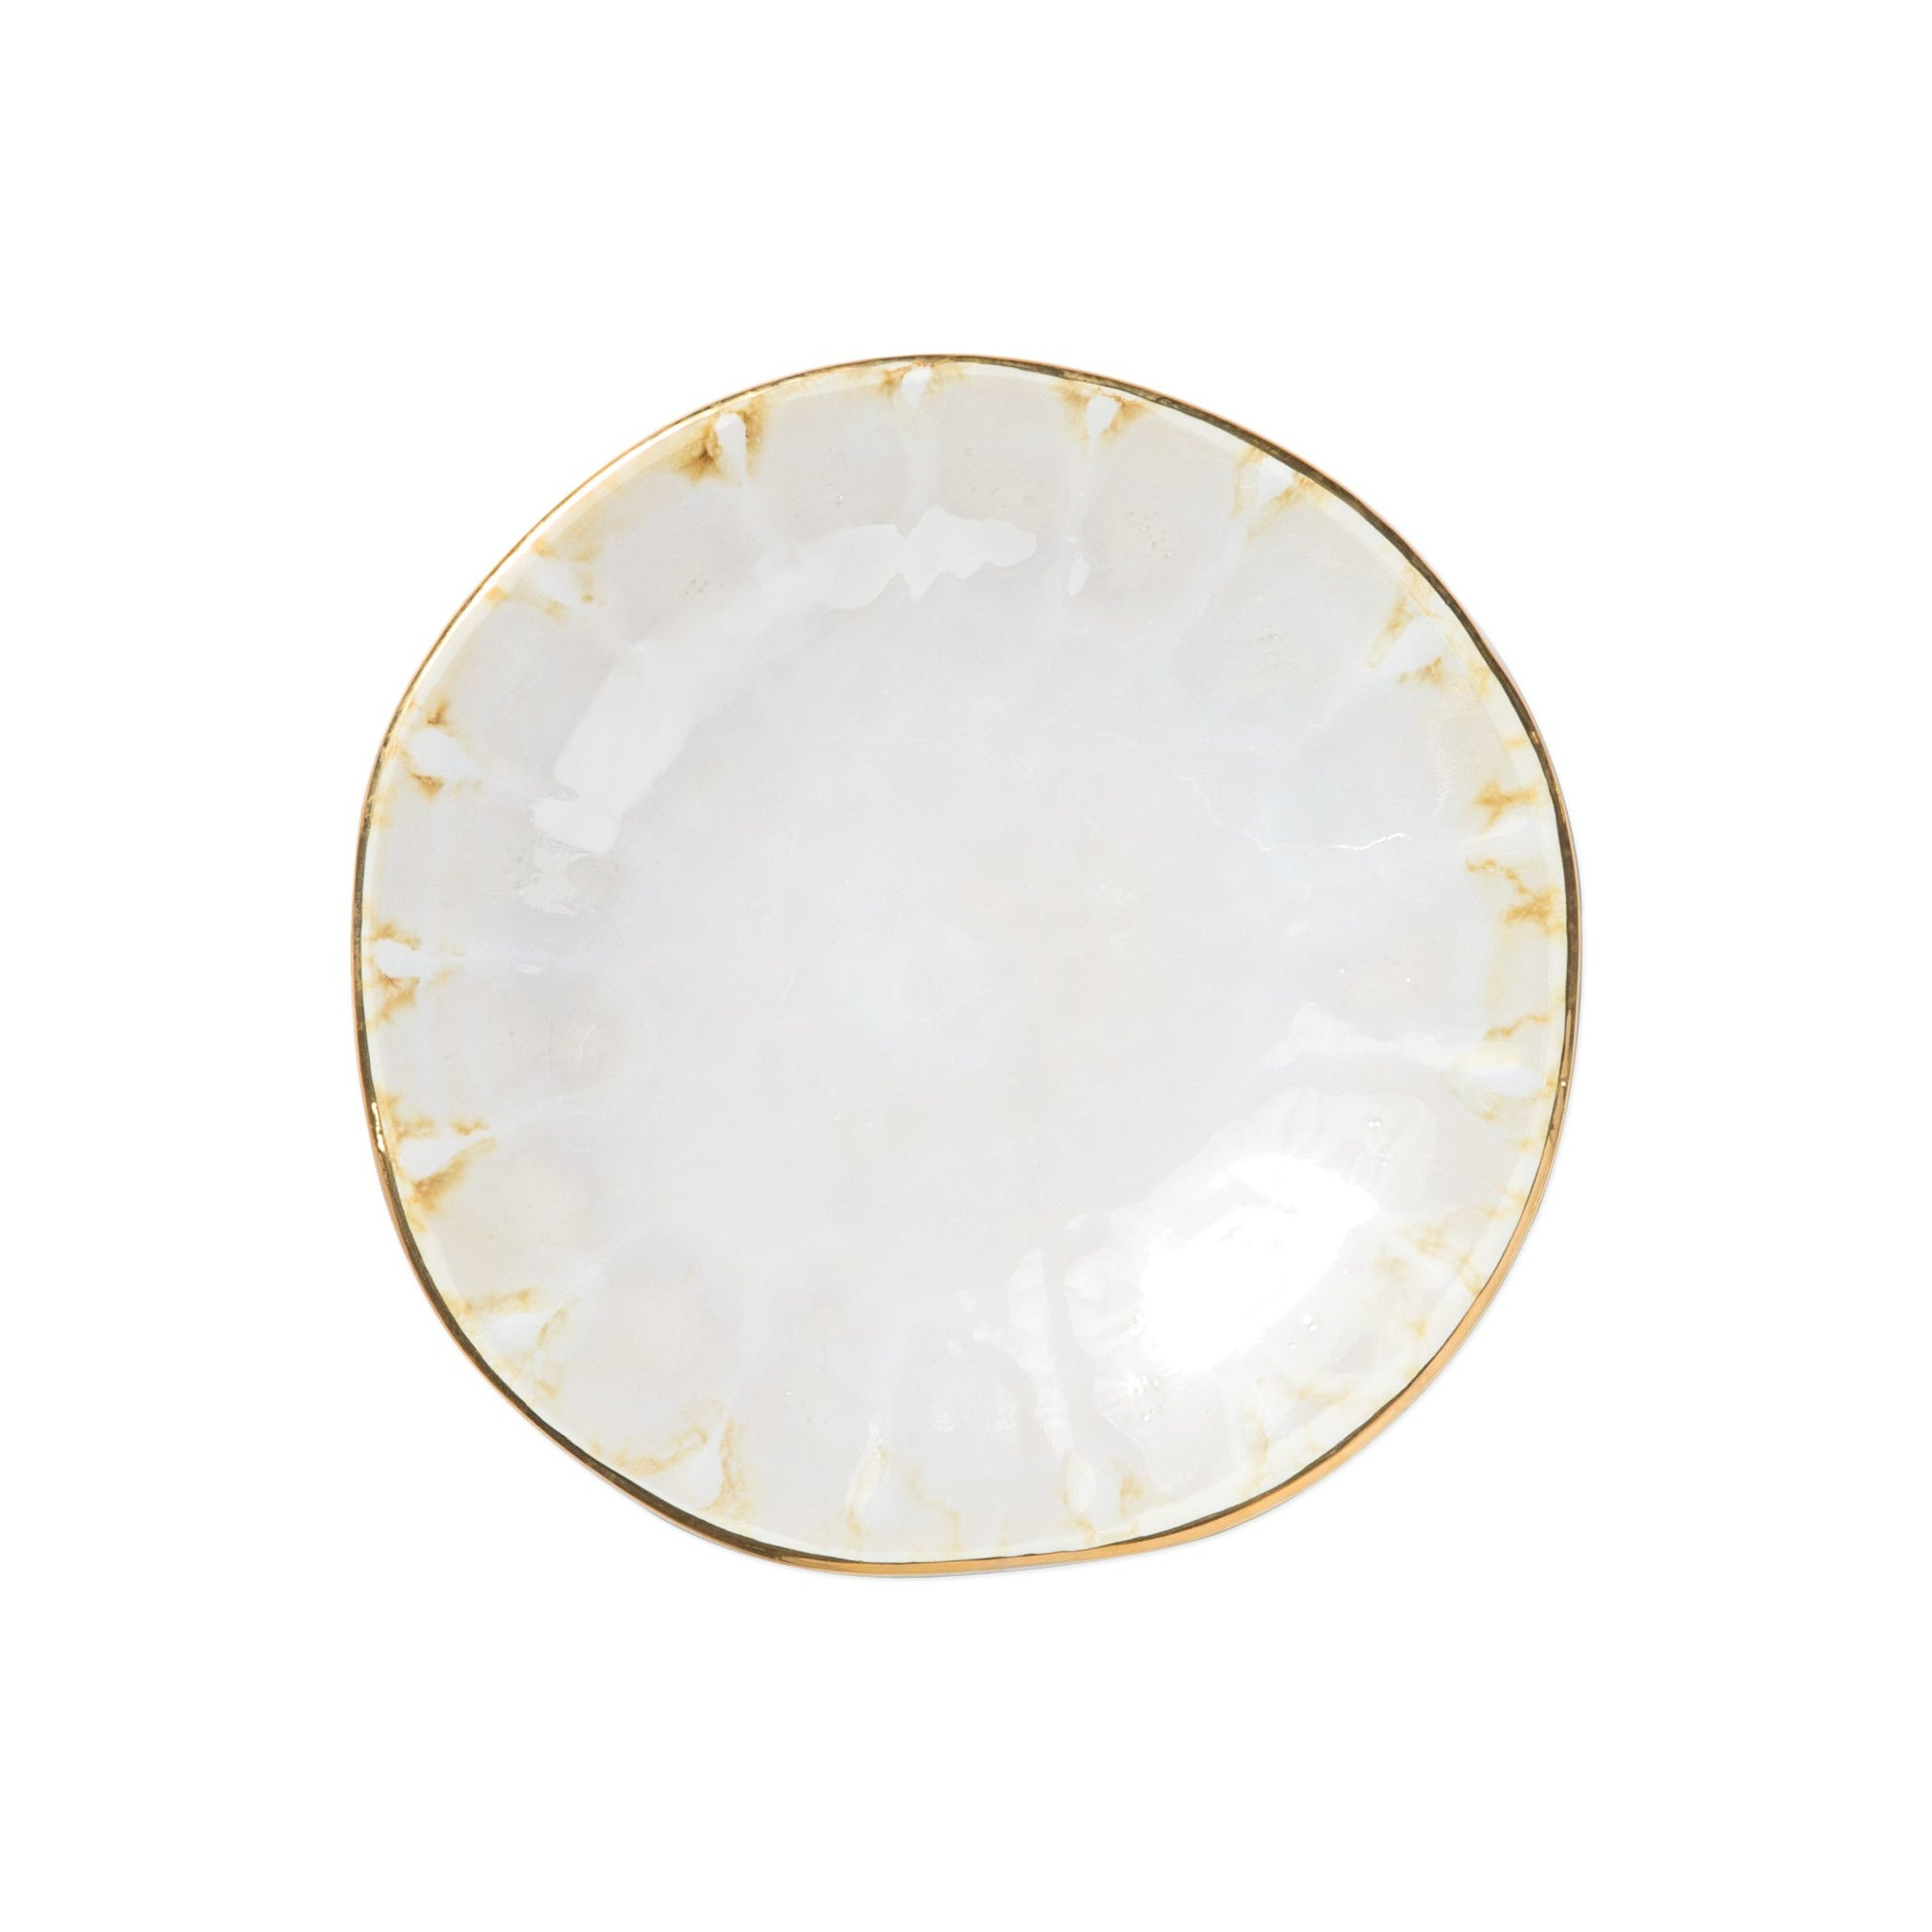 Perla Bread and Butter Plate